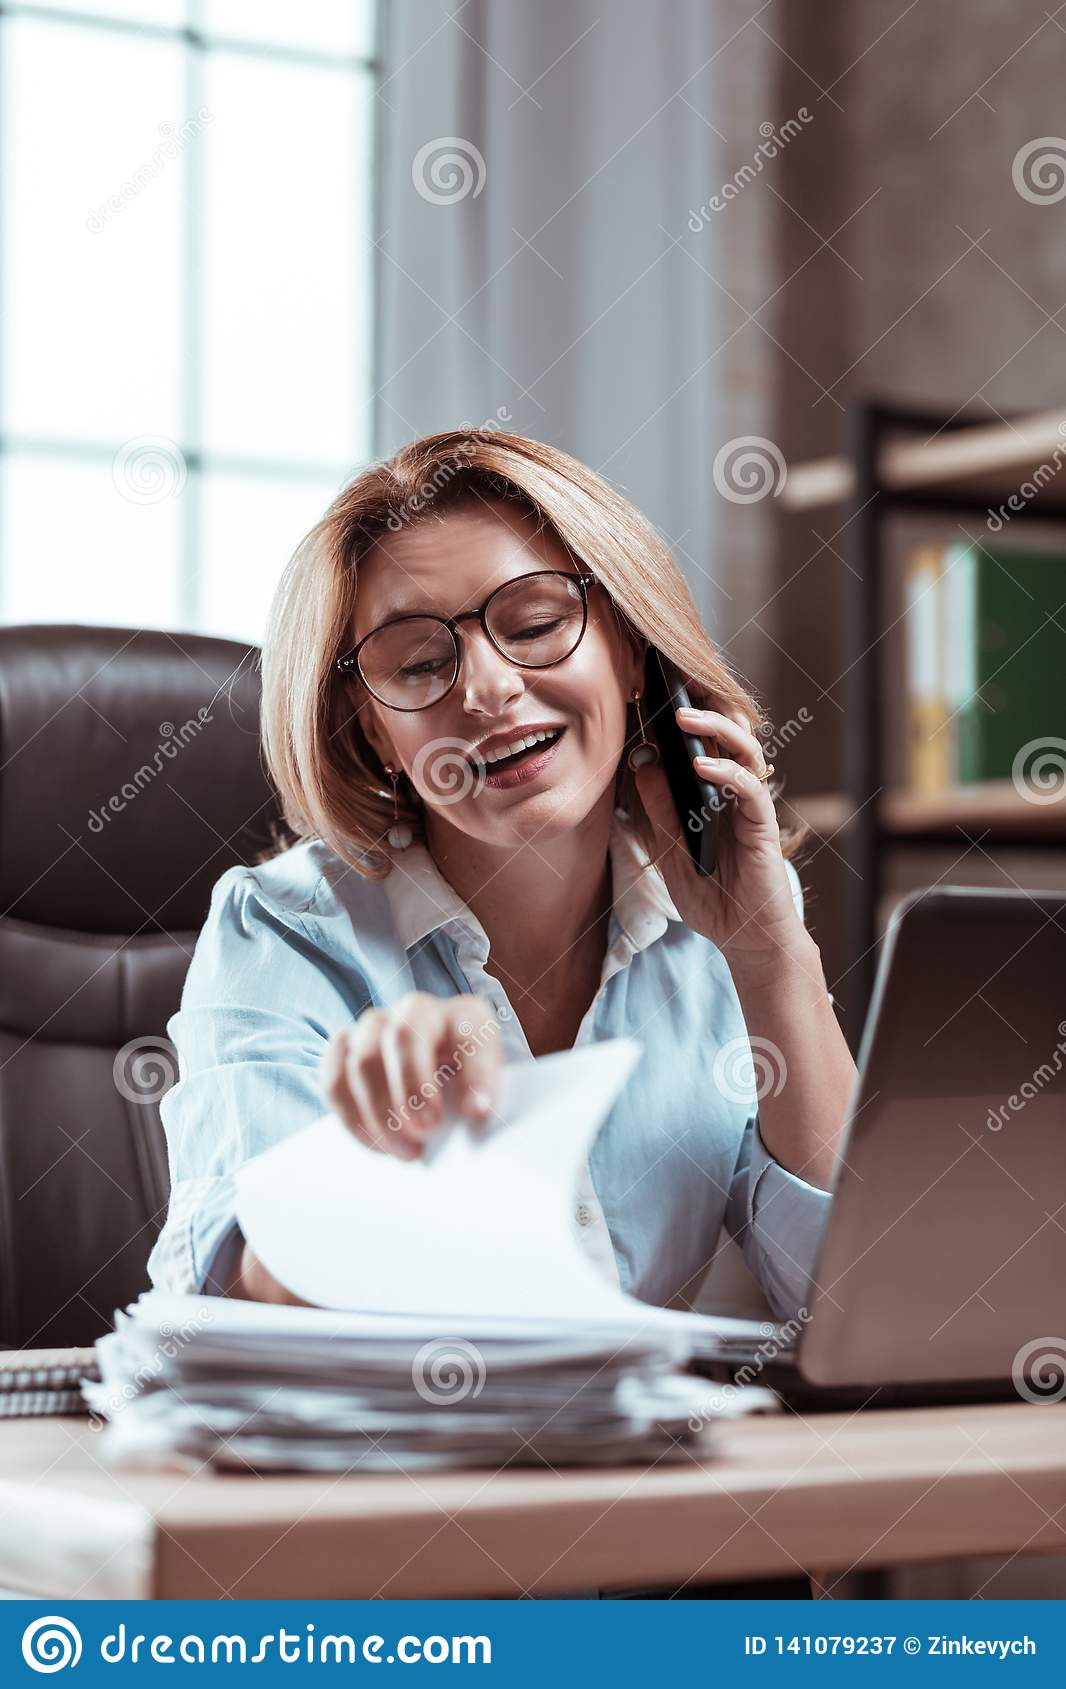 Blonde-haired businesswoman searching some important work documents